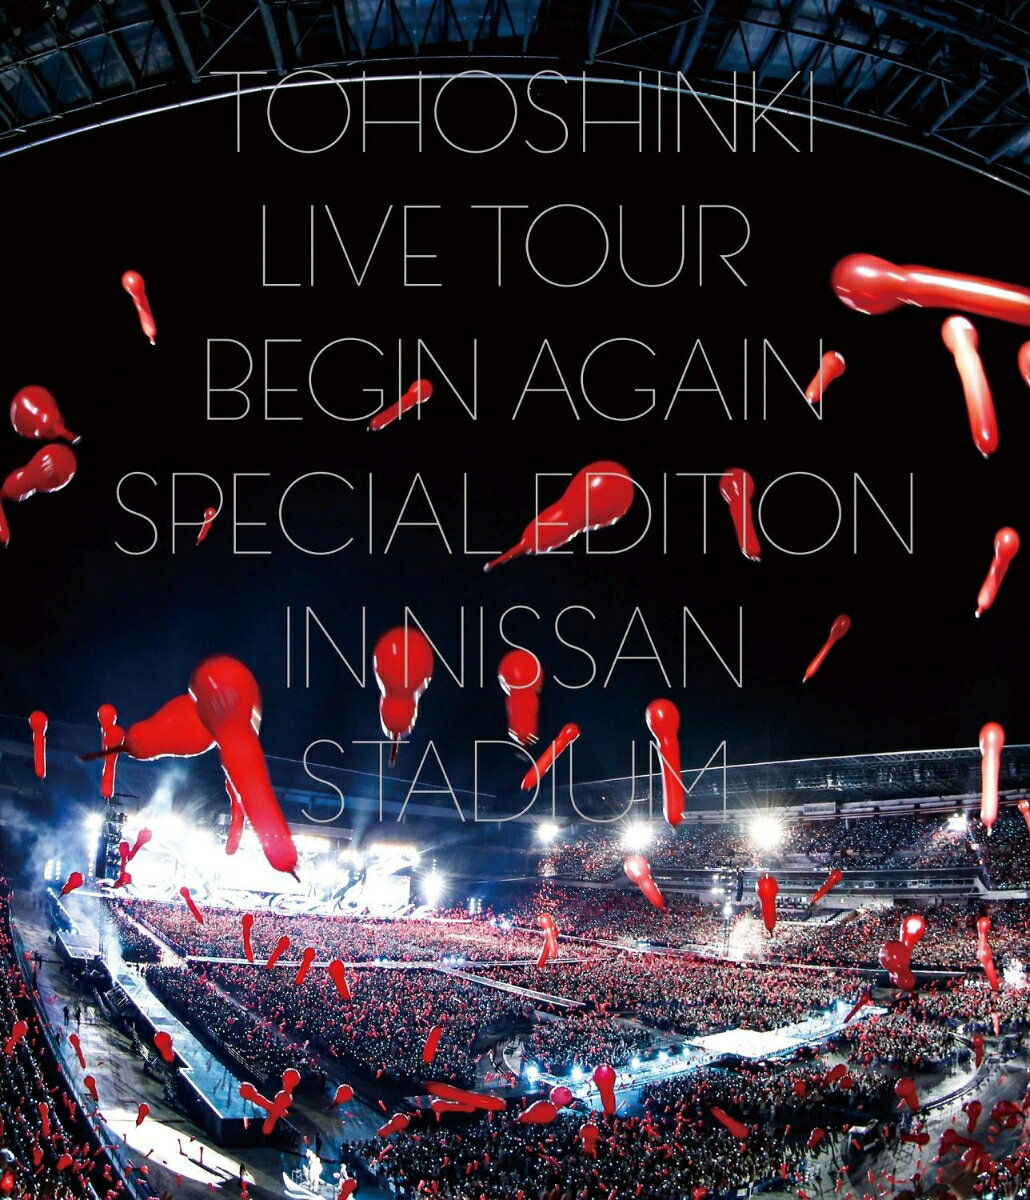 東方神起 LIVE TOUR 〜Begin Again〜 Special Edition in NISSAN STADIUM(Blu-ray Disc2枚組 スマプラ対応)【Blu-ray】 [ 東方神起 ]